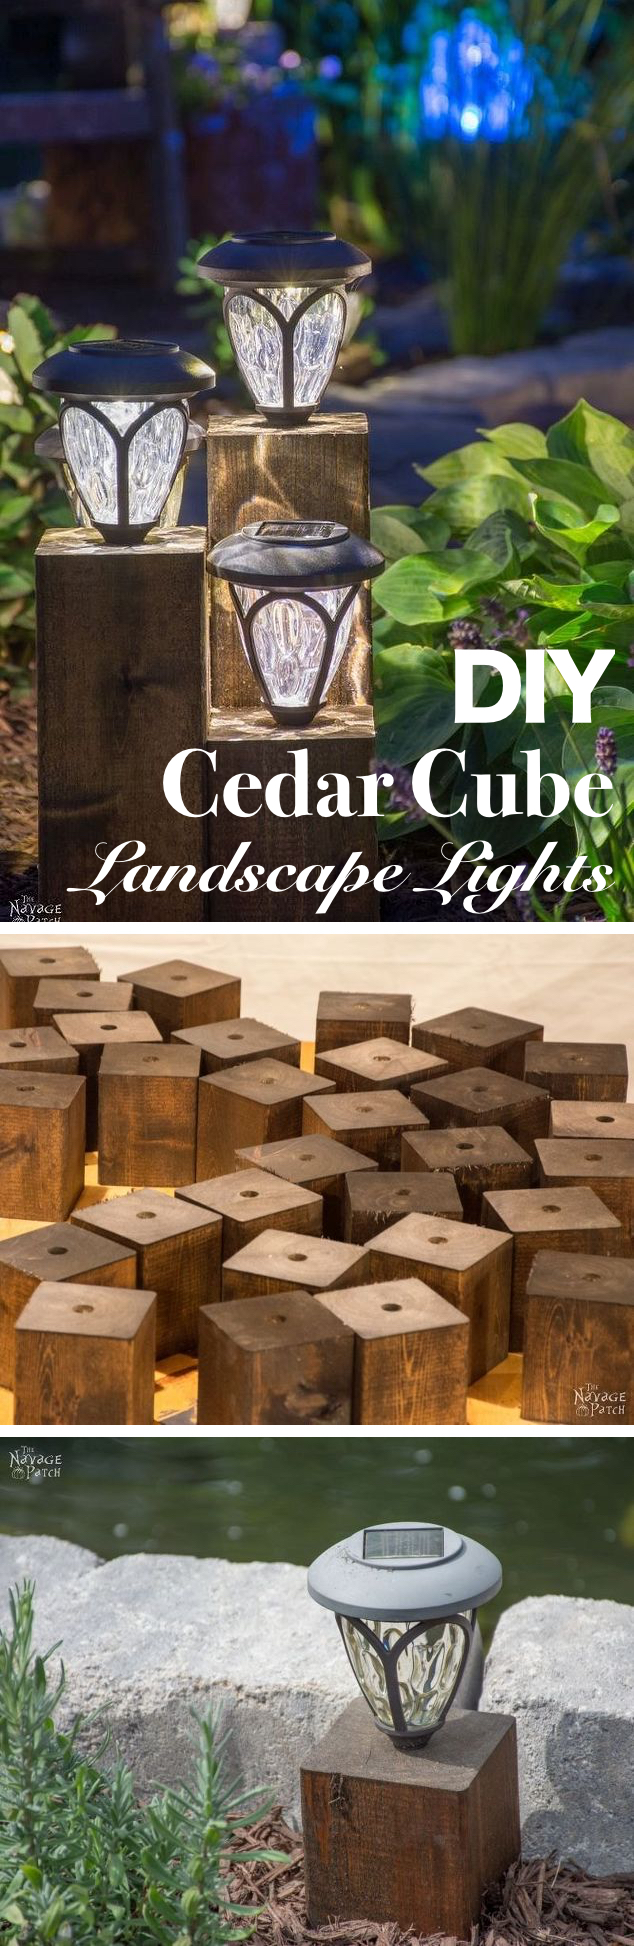 15 brilliant diy outdoor lighting ideas for summer homelovr cedar cube landscape lights diy mozeypictures Gallery